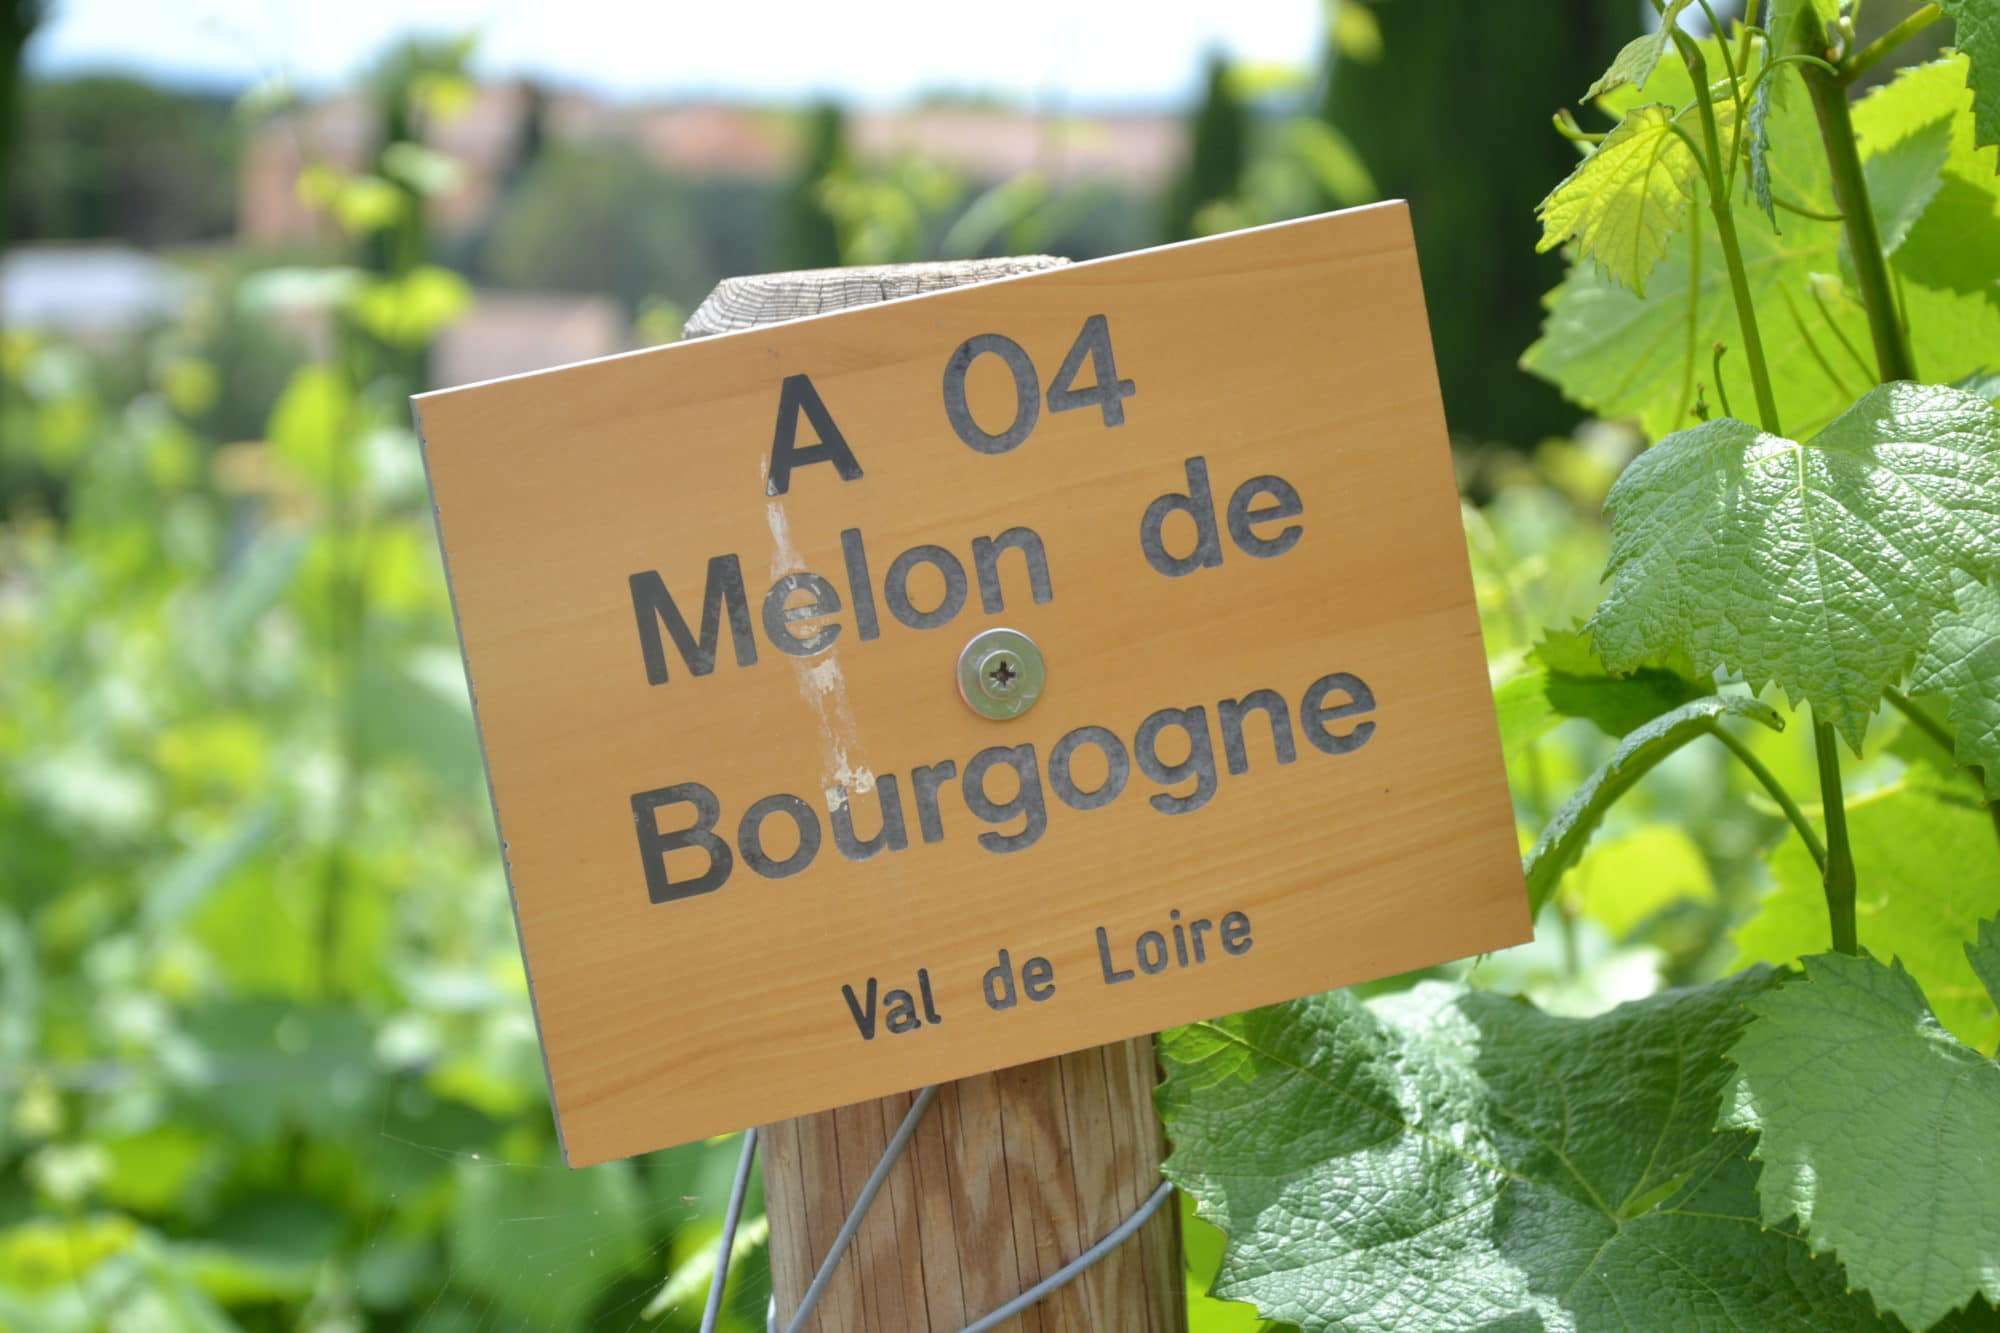 Melon de bourgogne Loire Valley France, French wine regions